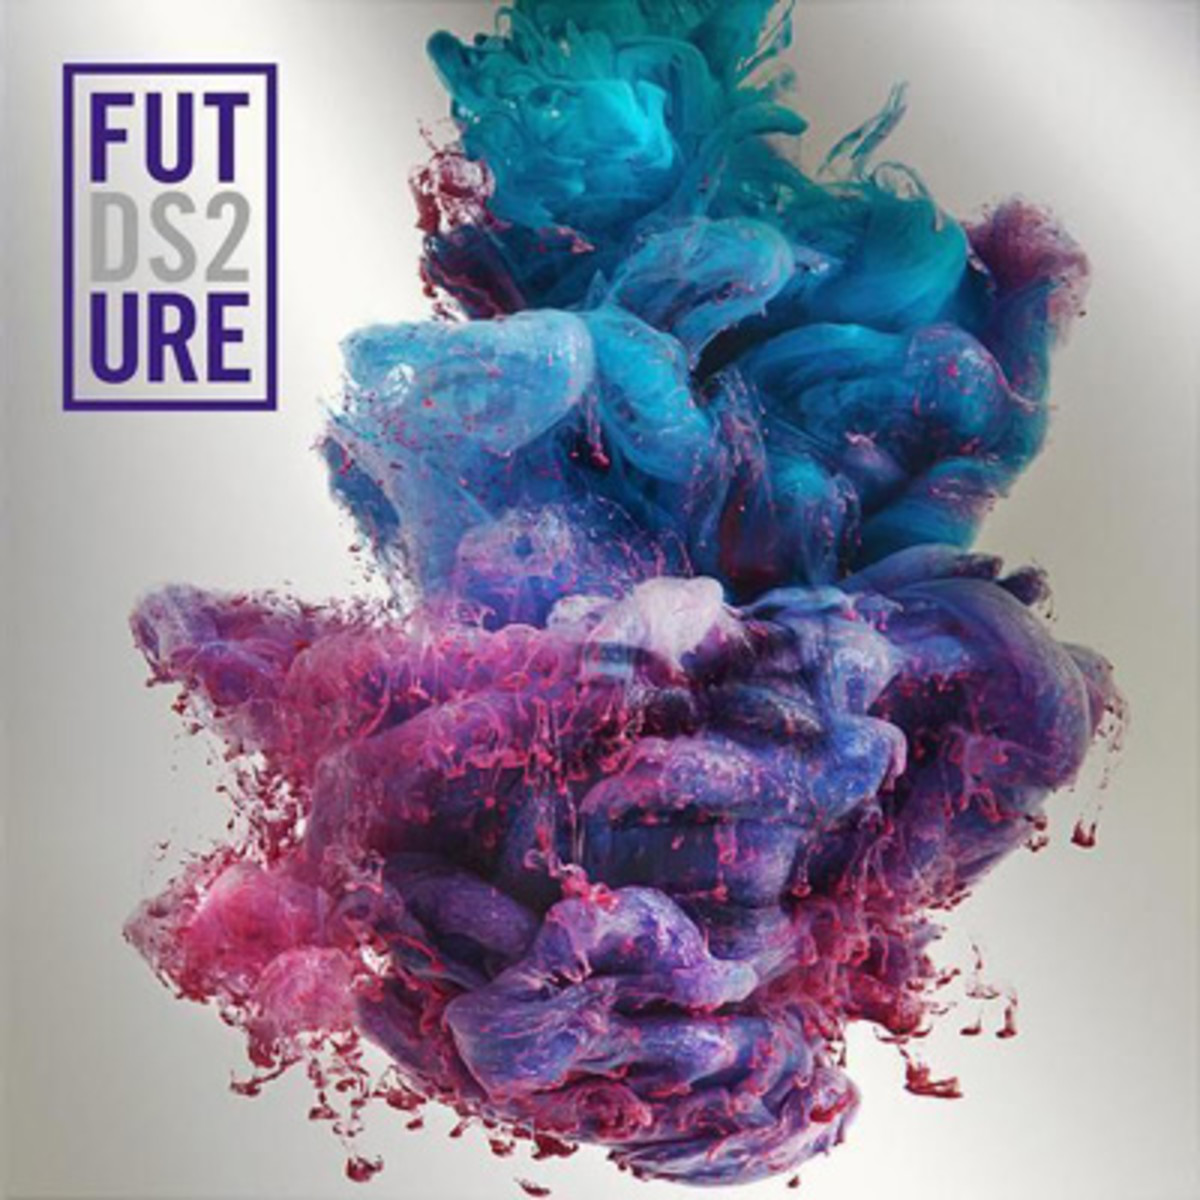 future-dirty-sprite-2-album-cover.jpg